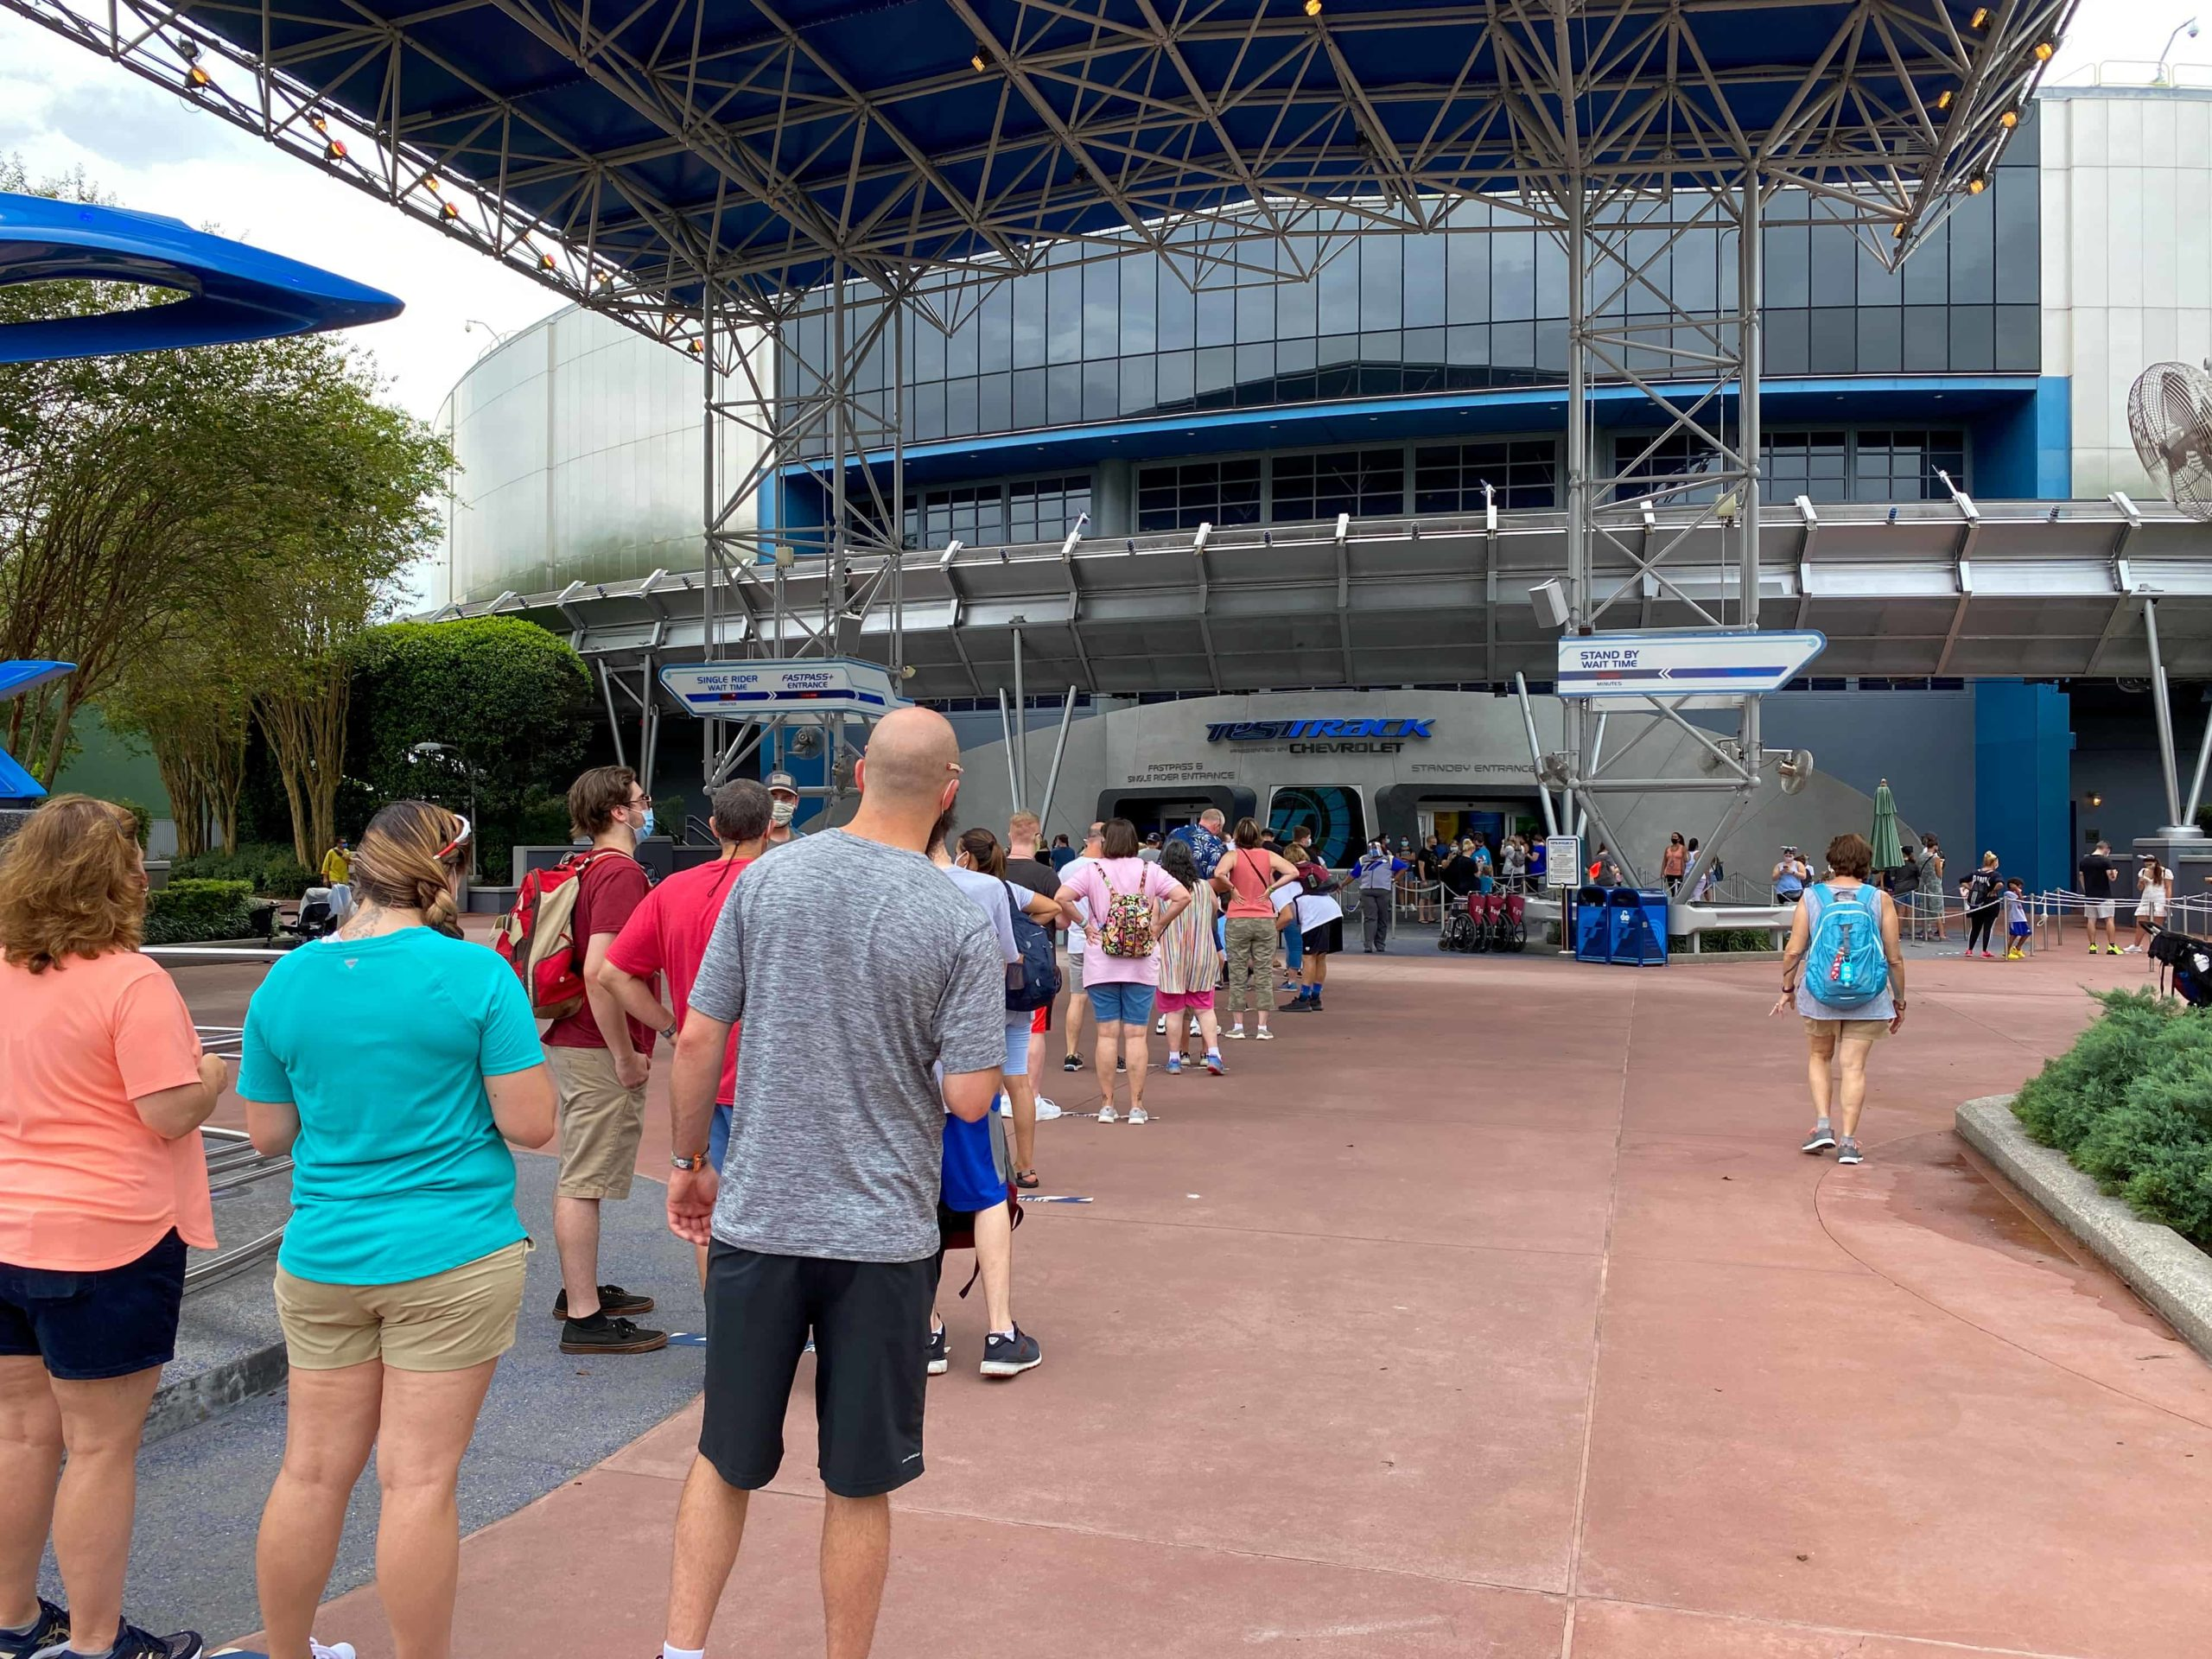 Single Rider Lines at Disney World